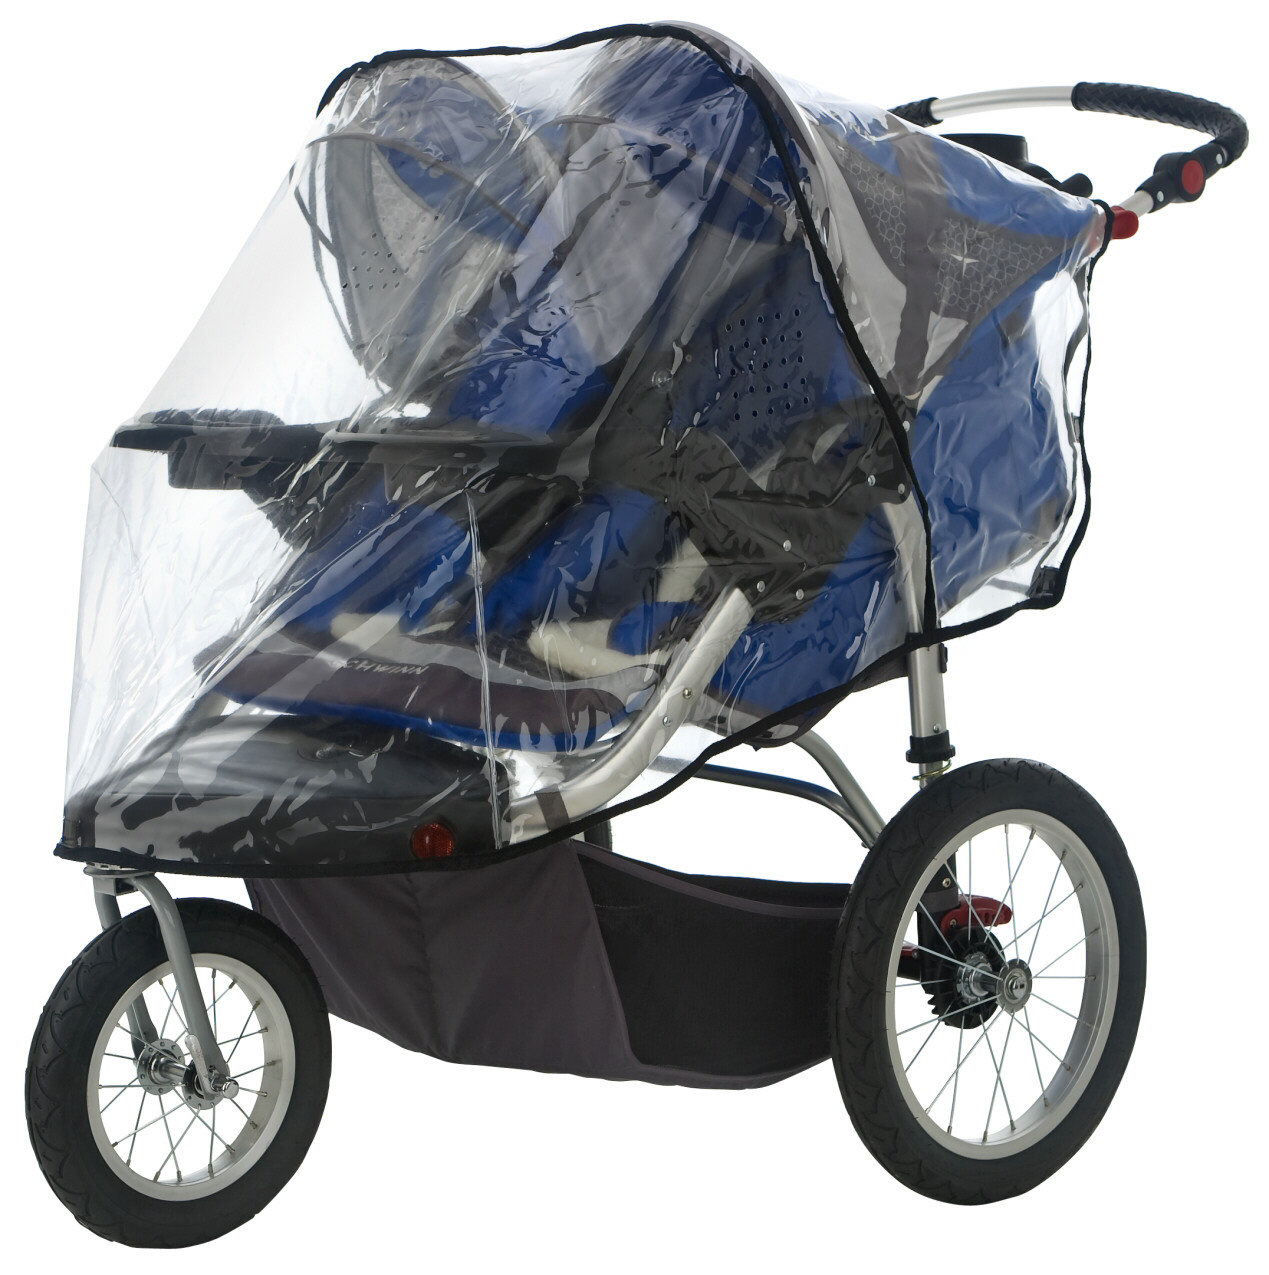 d1bef4b926ec Instep Stroller Sun and Wind Covers from Sasha s - (888) 640 0917